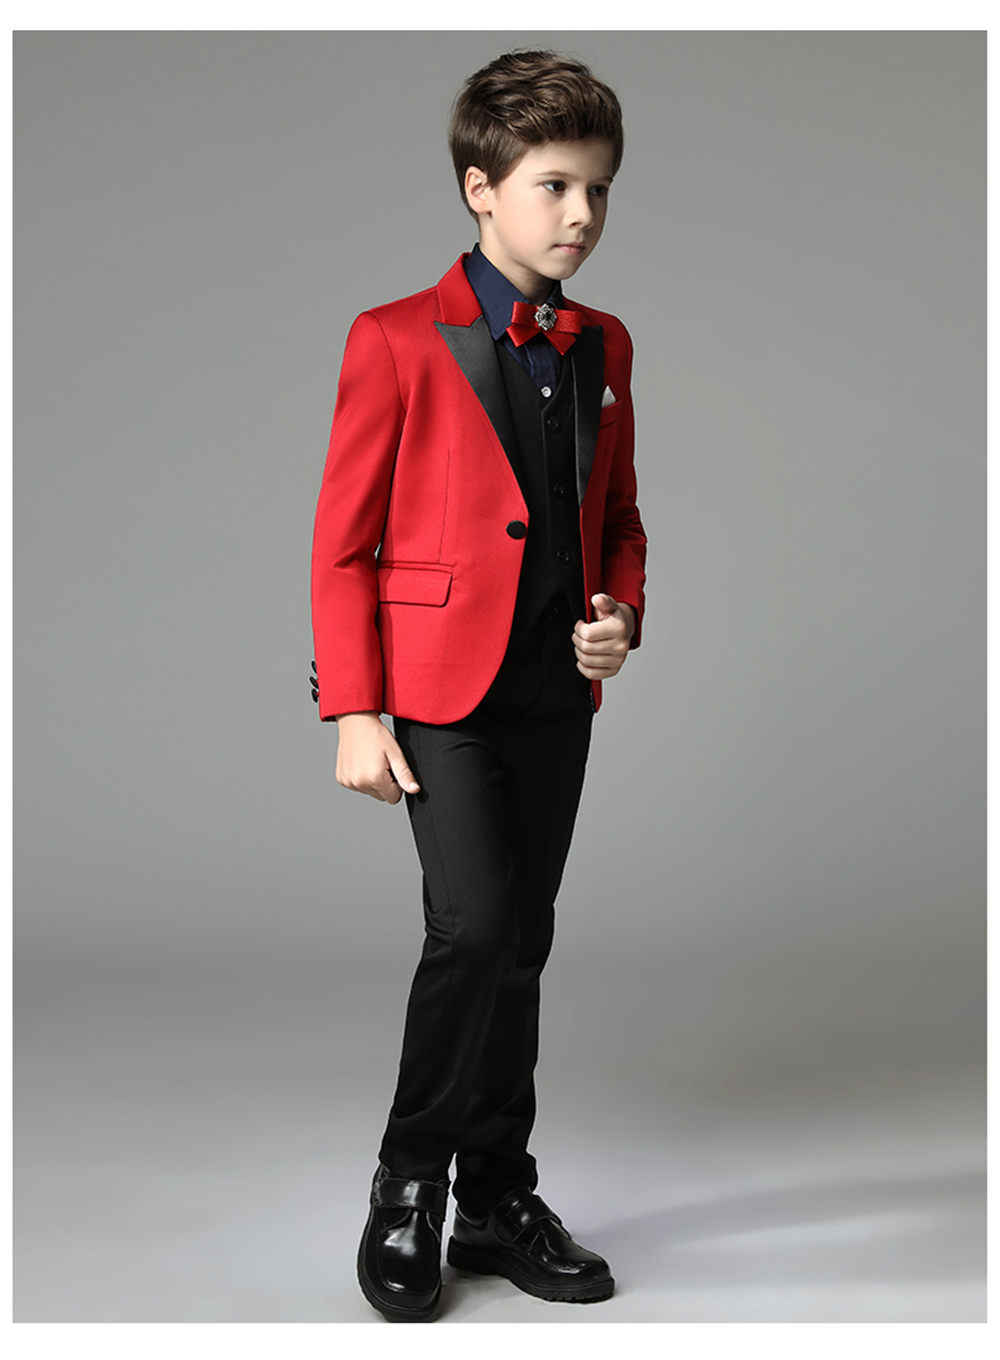 b383729fa99c ... 2018 New 3 pieces Boys Red Wedding Suit Brand England Style Gentle Boys  Formal Tuxedos Suit ...